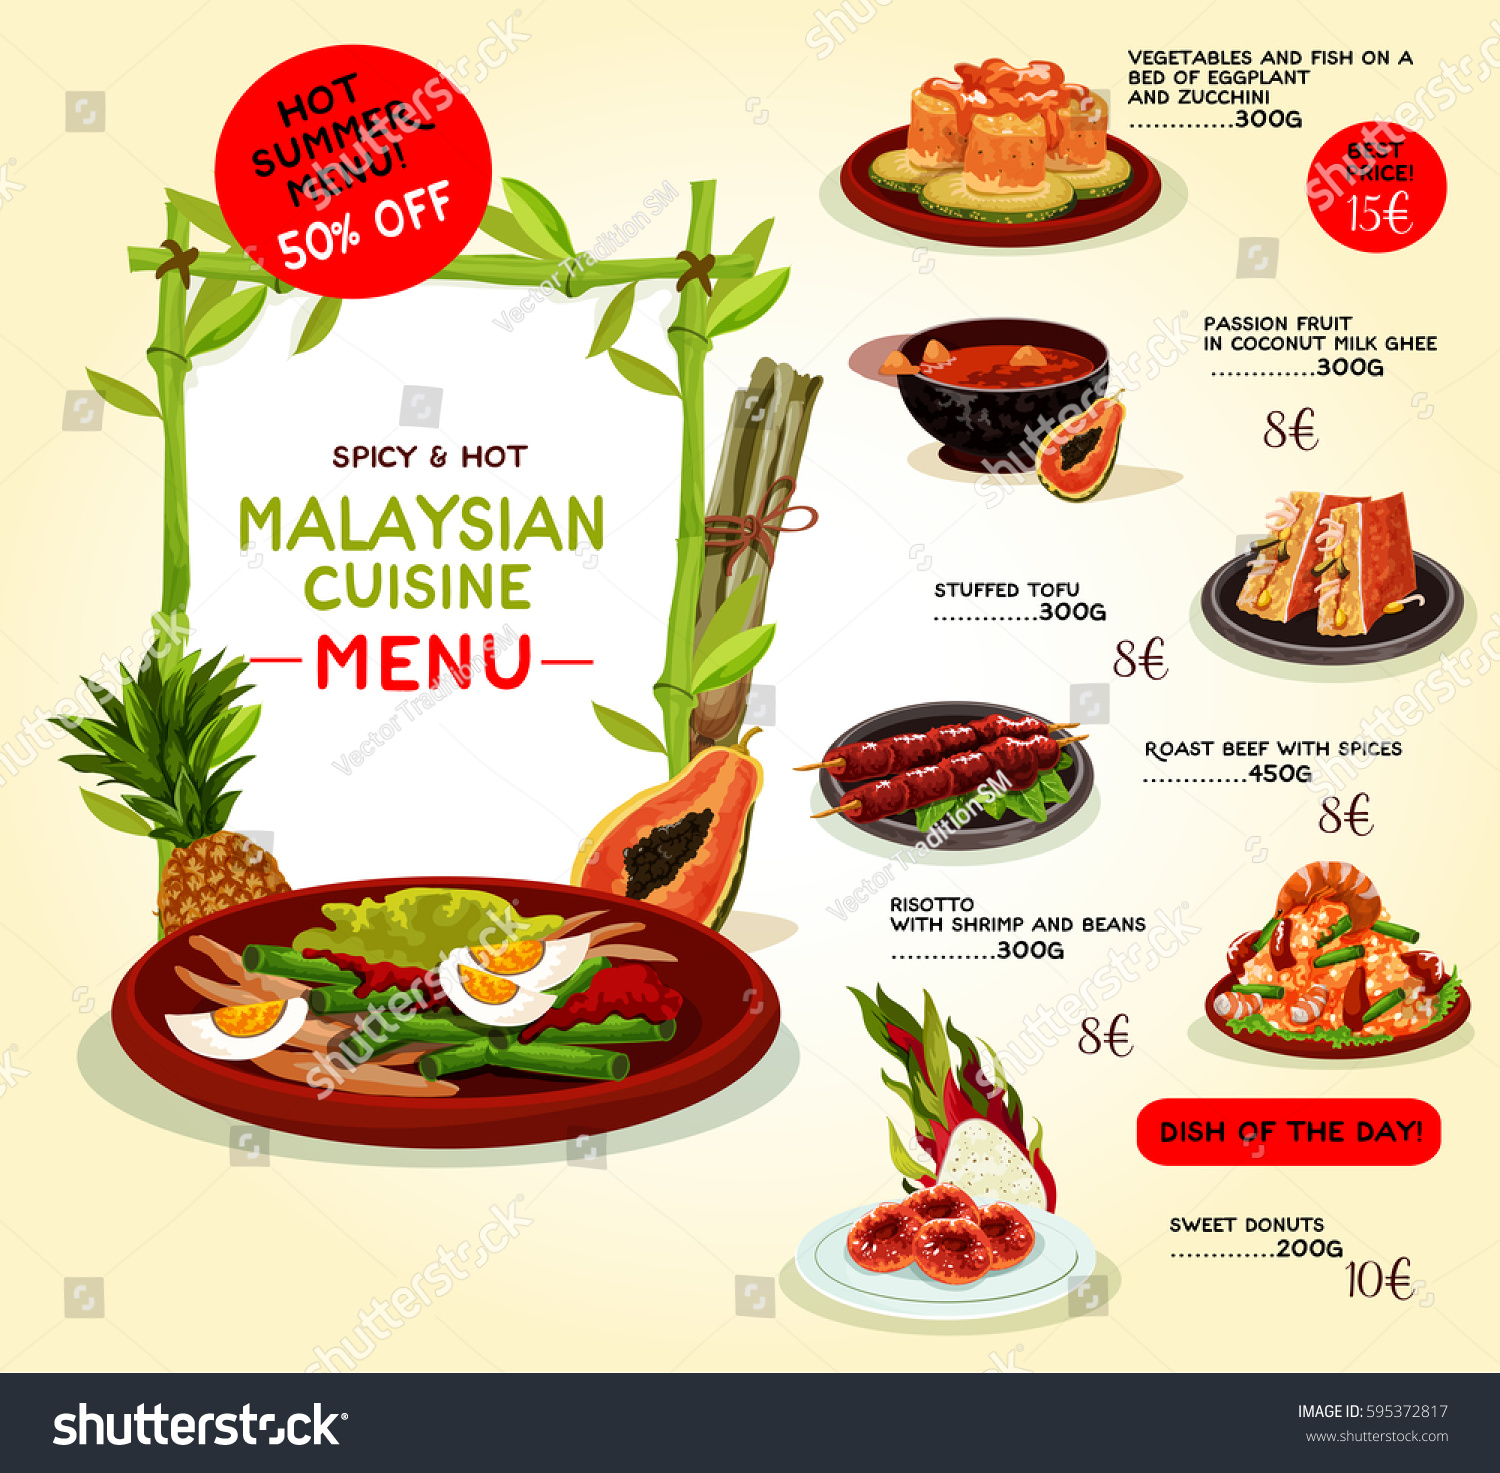 Malaysian cuisine restaurant menu template asian stock for Asian cuisine menu